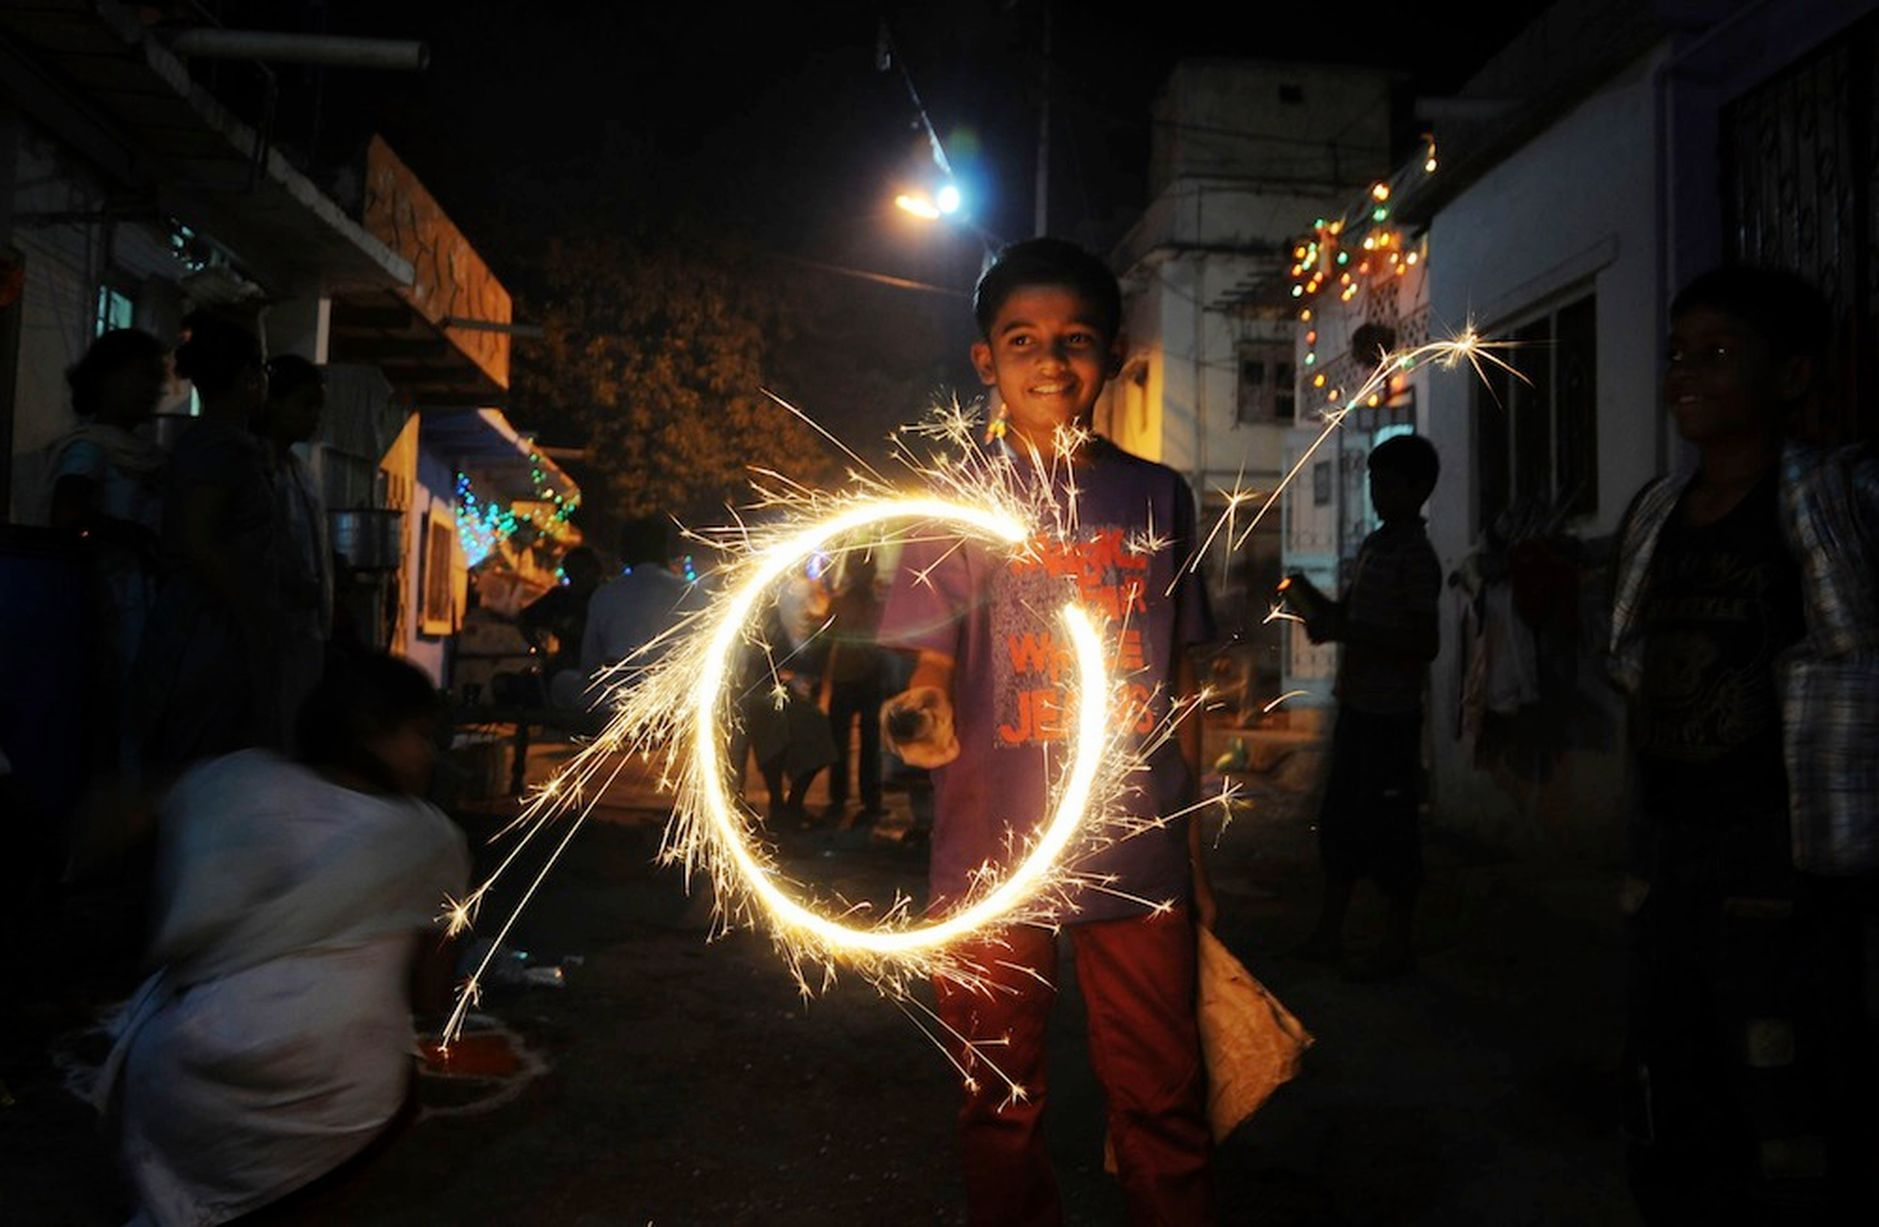 Watch Hindus light up their homes creating spectacular Diwali festival pictures | Hindu festival of lights, Diwali festival, Indian festival of lights